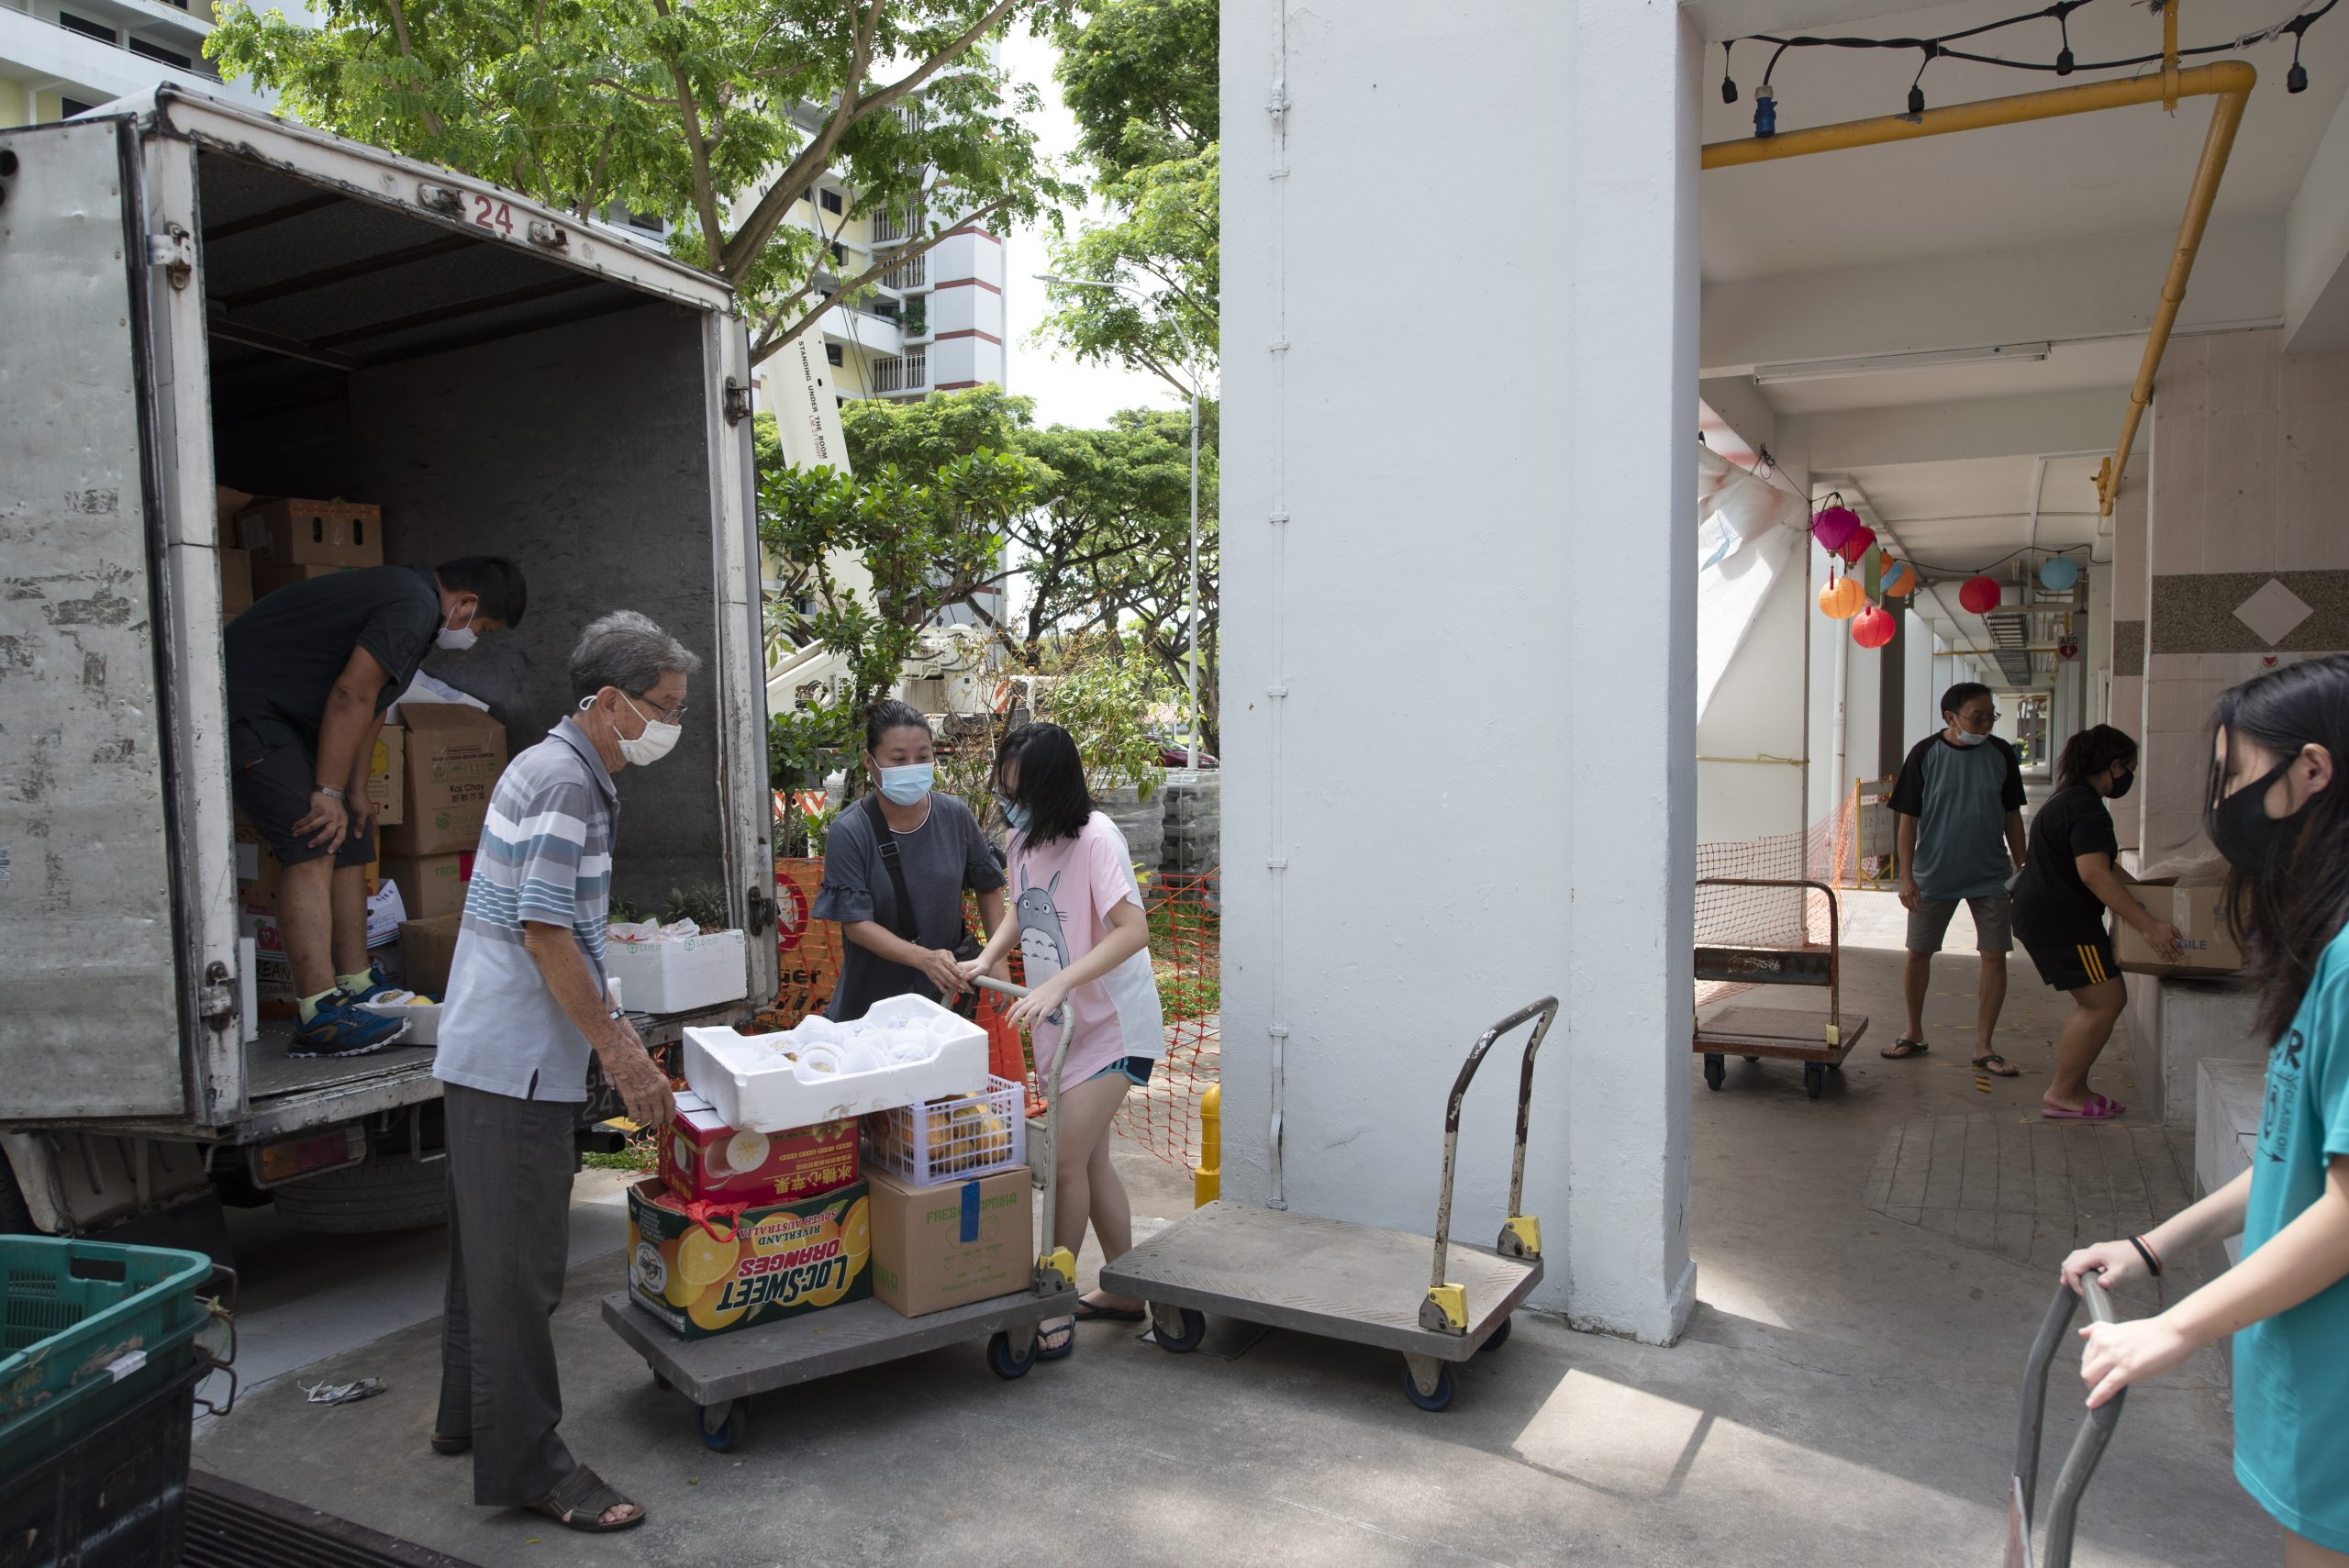 Residents help unload rescued produce from Fridge Restock Community SG. The rescued food is then laid out at the Senior Residents' Corner where anyone can take some for their own consumption. Most of the produce is usually taken with two to three hours.